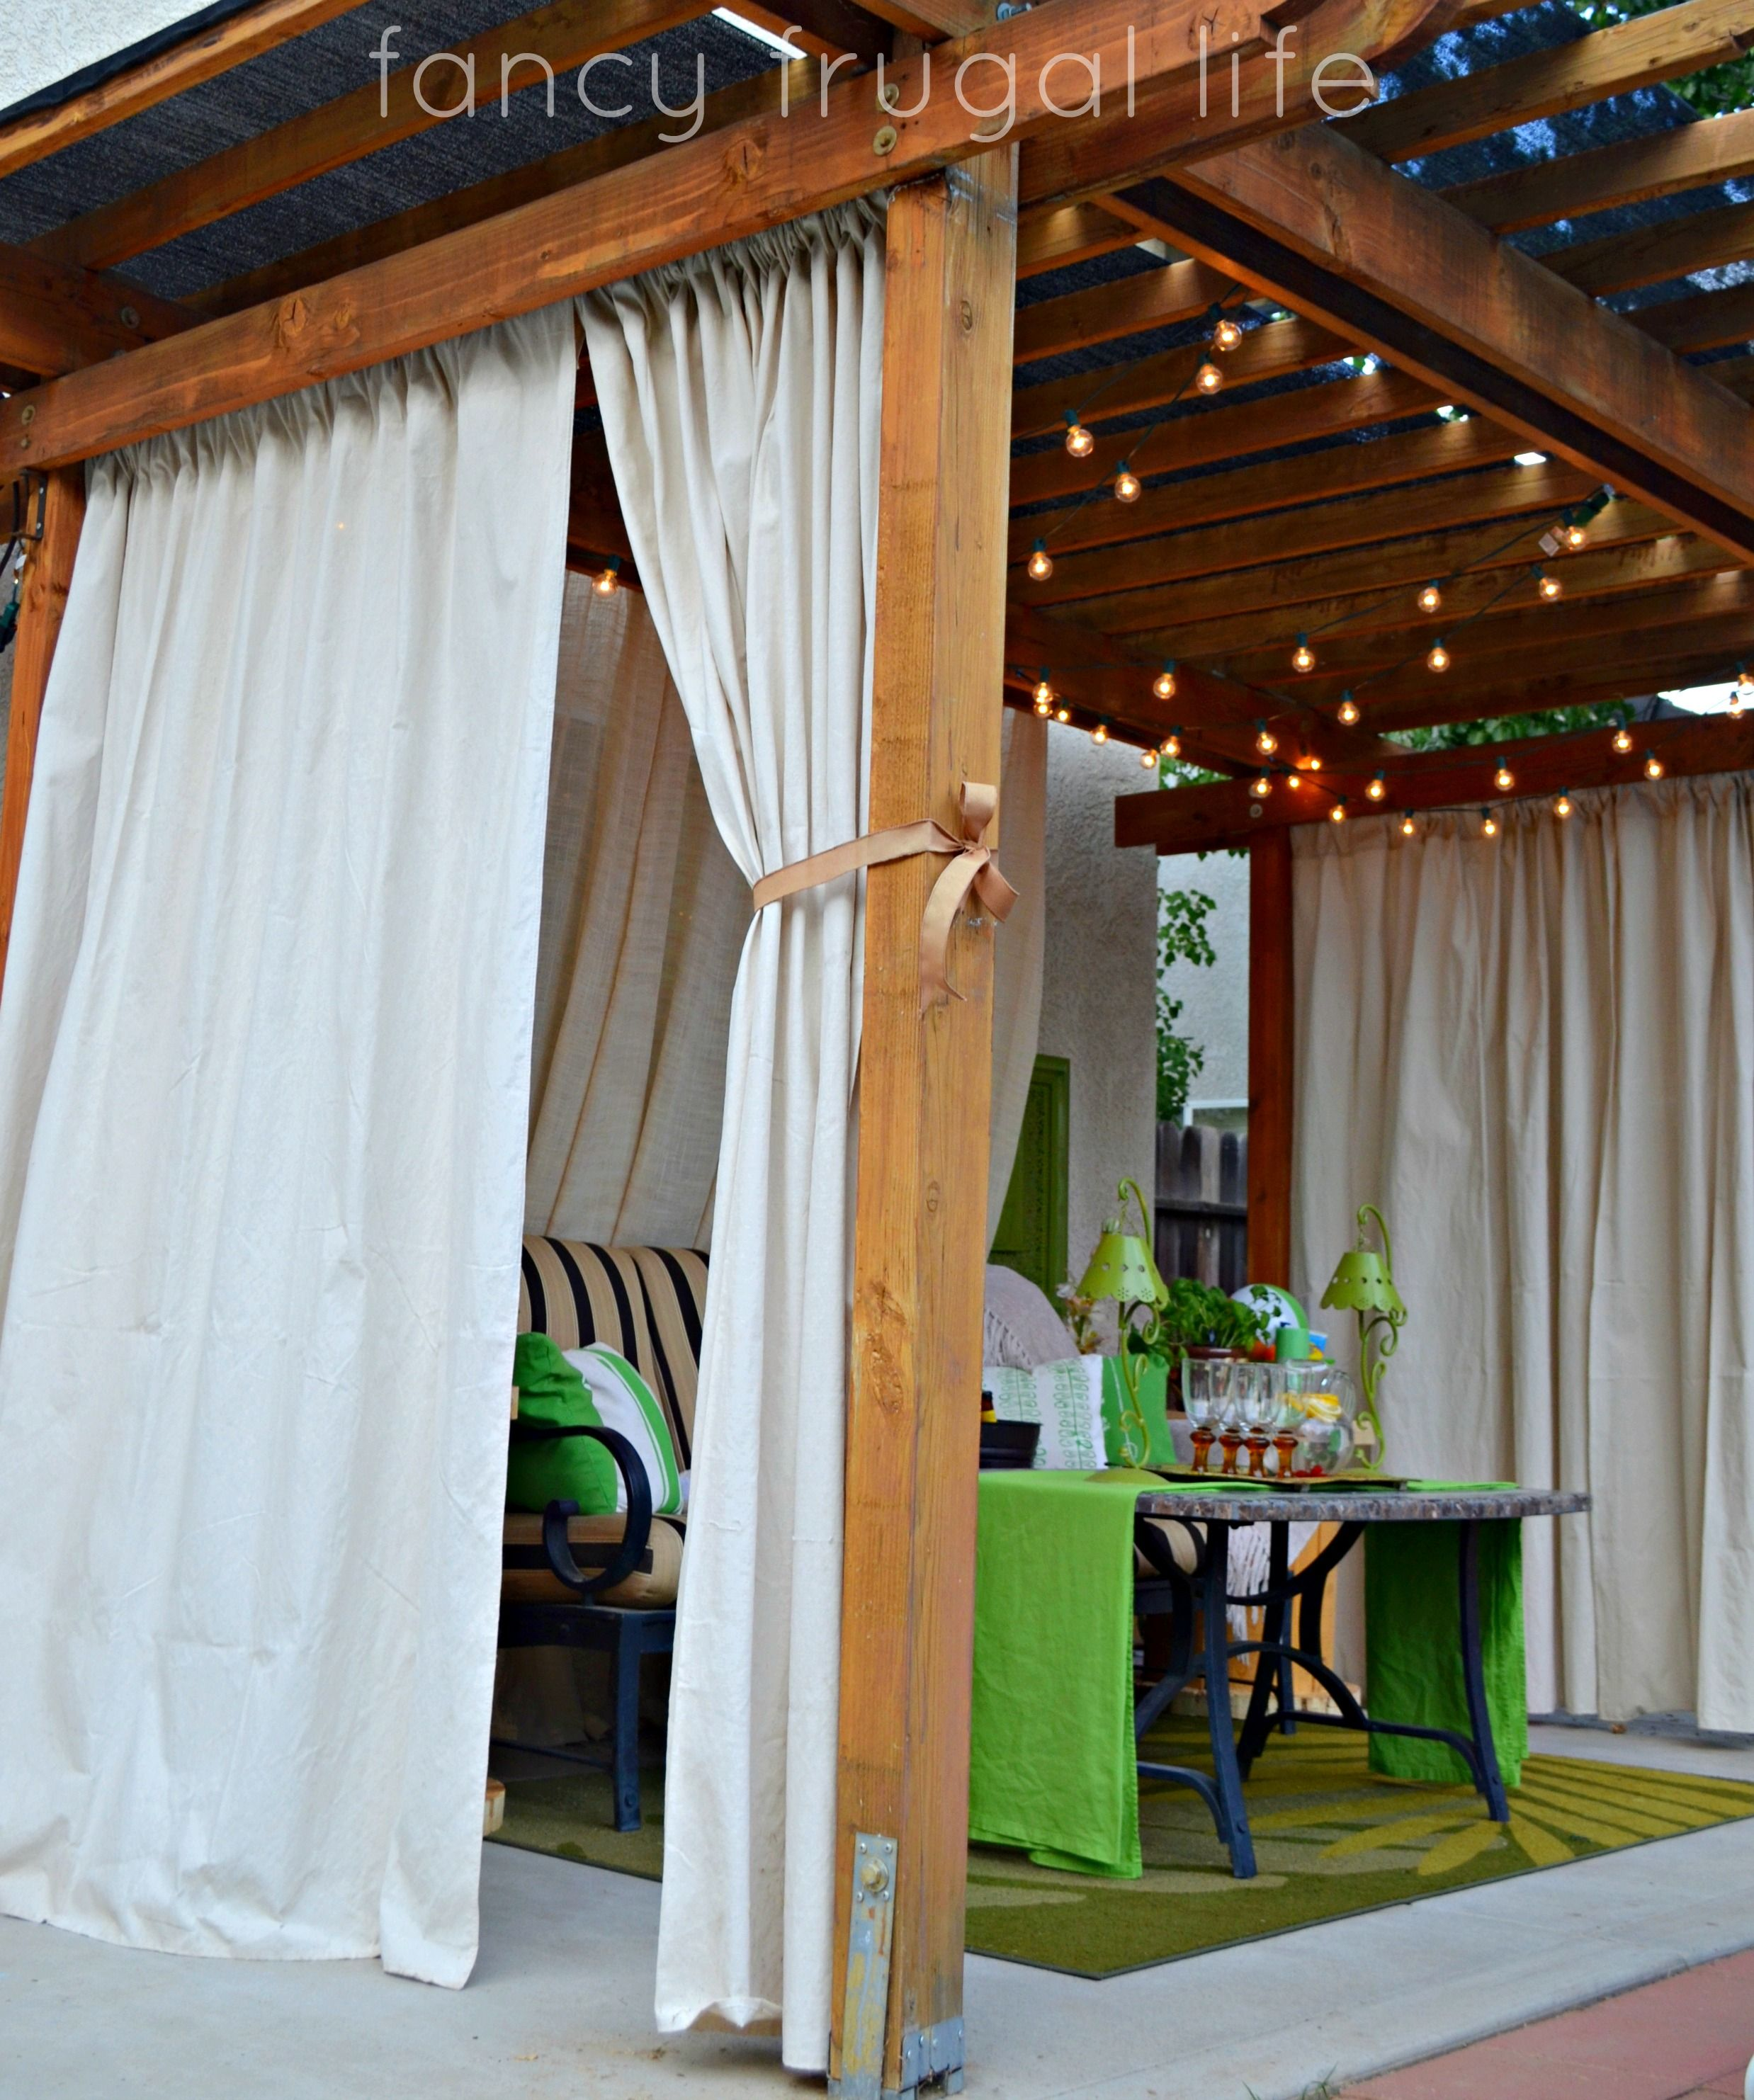 Drop Cloth Outdoor Curtain Tutorial Super Easy And Looks Fabulous Patio Makeover Diy Patio